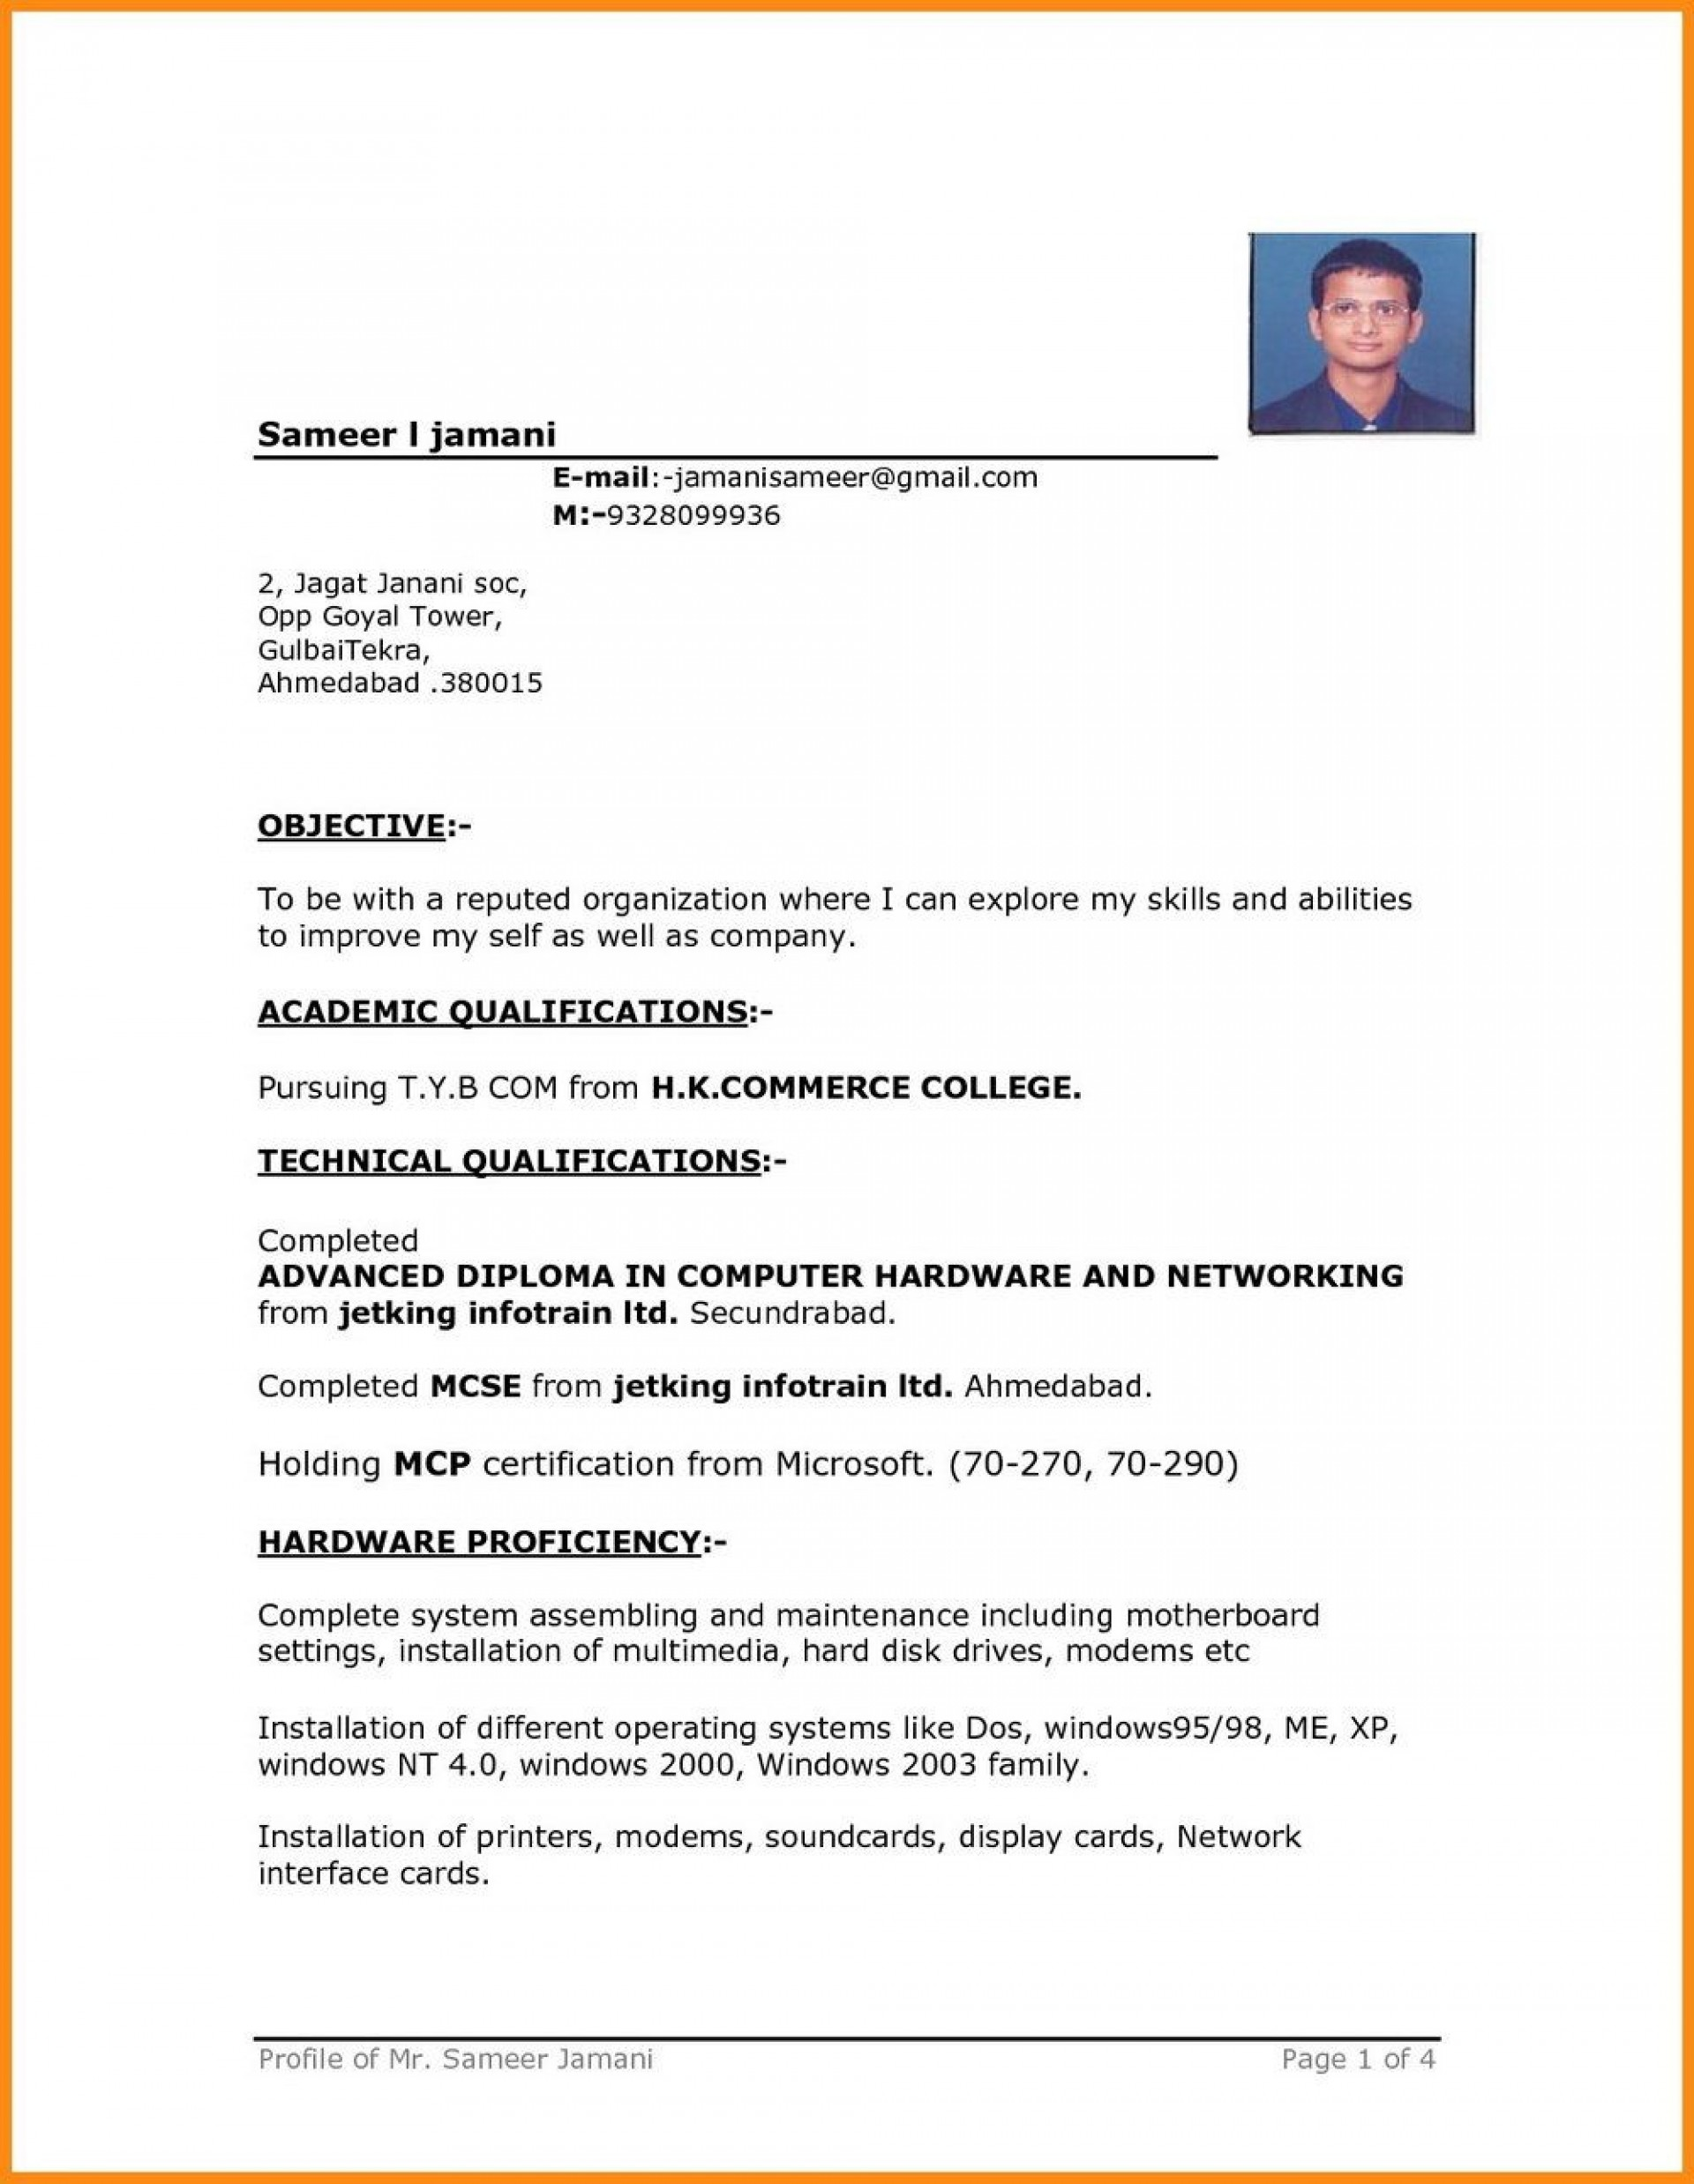 004 Remarkable Simple Resume Template Download In M Word Sample 1920